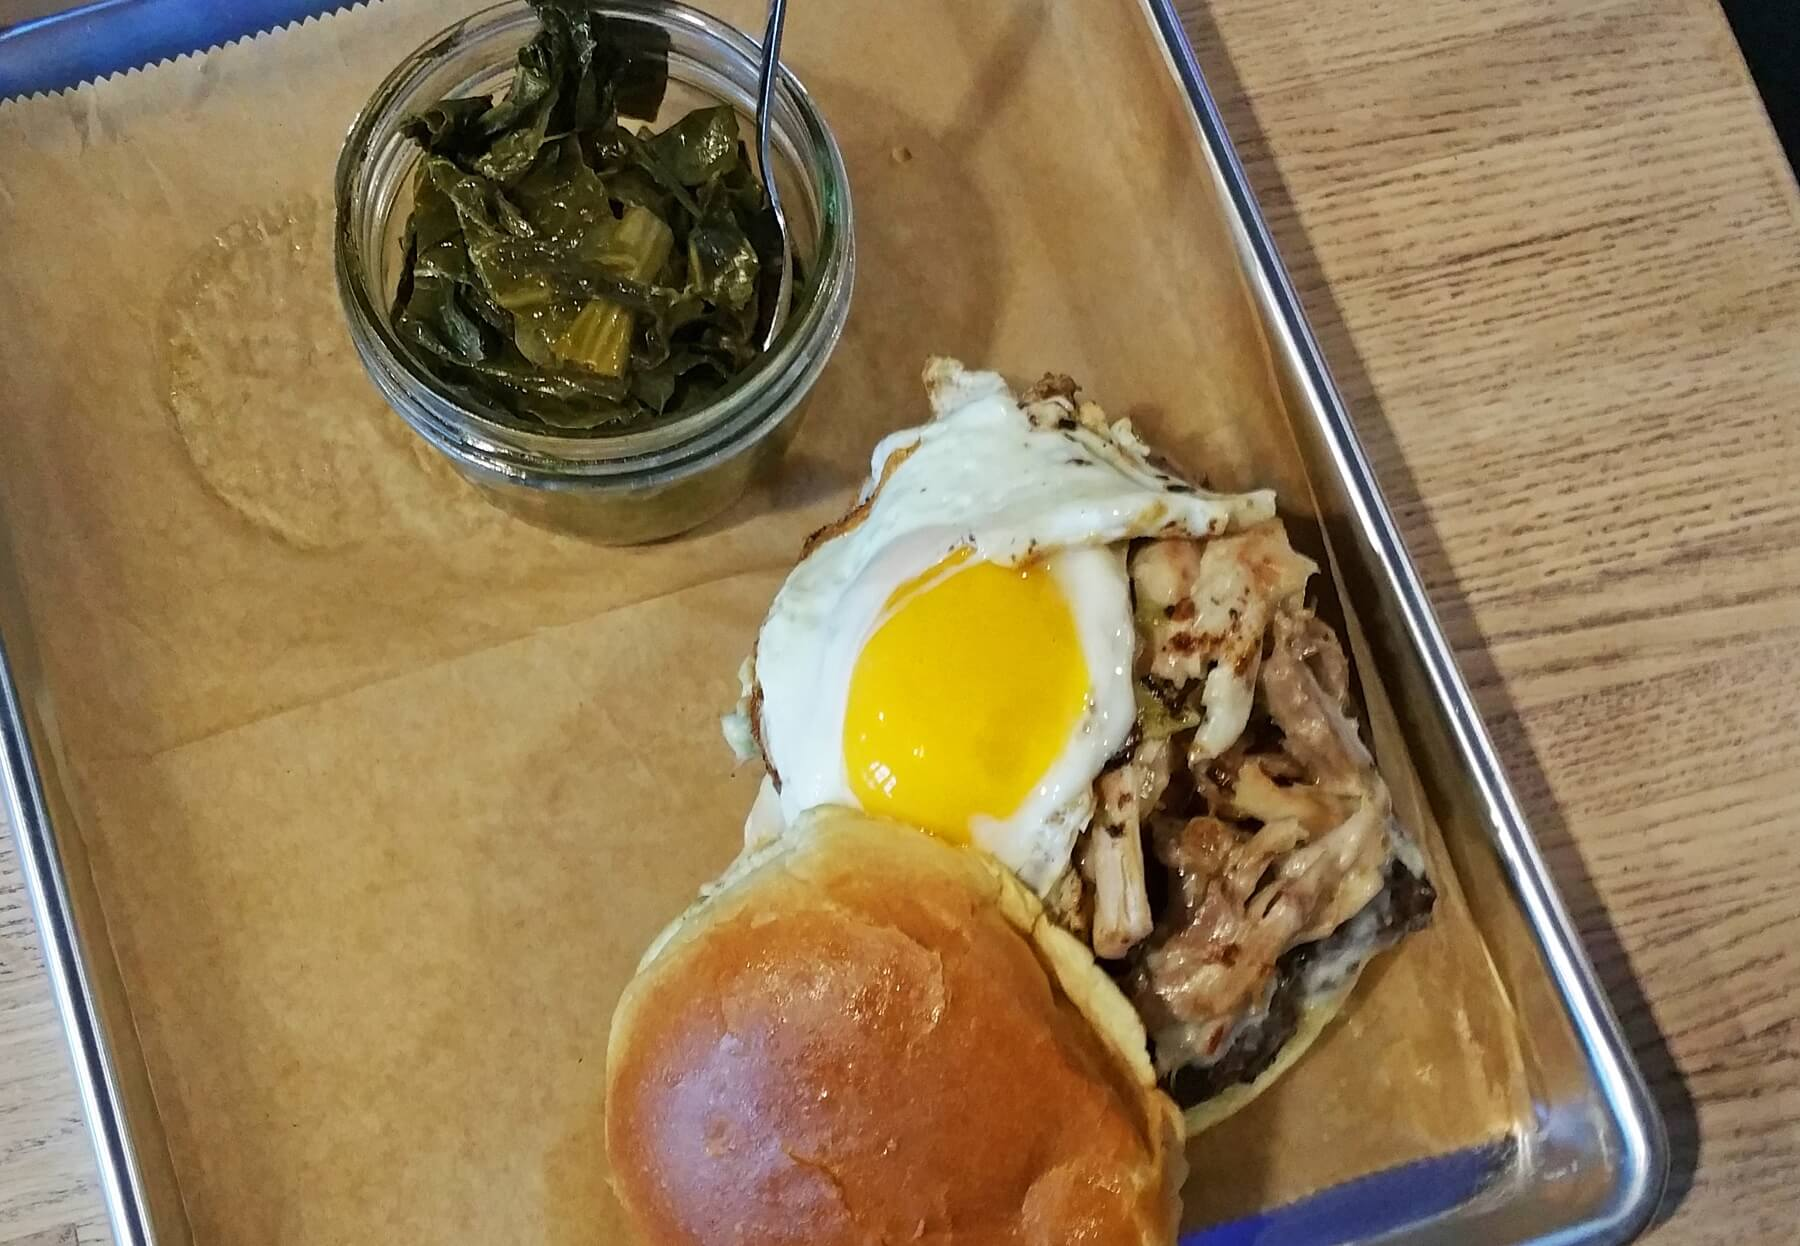 """The Farm"" burger features a short rib blend patty on a brioche bun with a smear of smoky mayo, topped with pork belly, duck confit and smoked turkey, drizzled in green chile queso,topped with a sunny-side-up egg and sprinkled with cracklins."